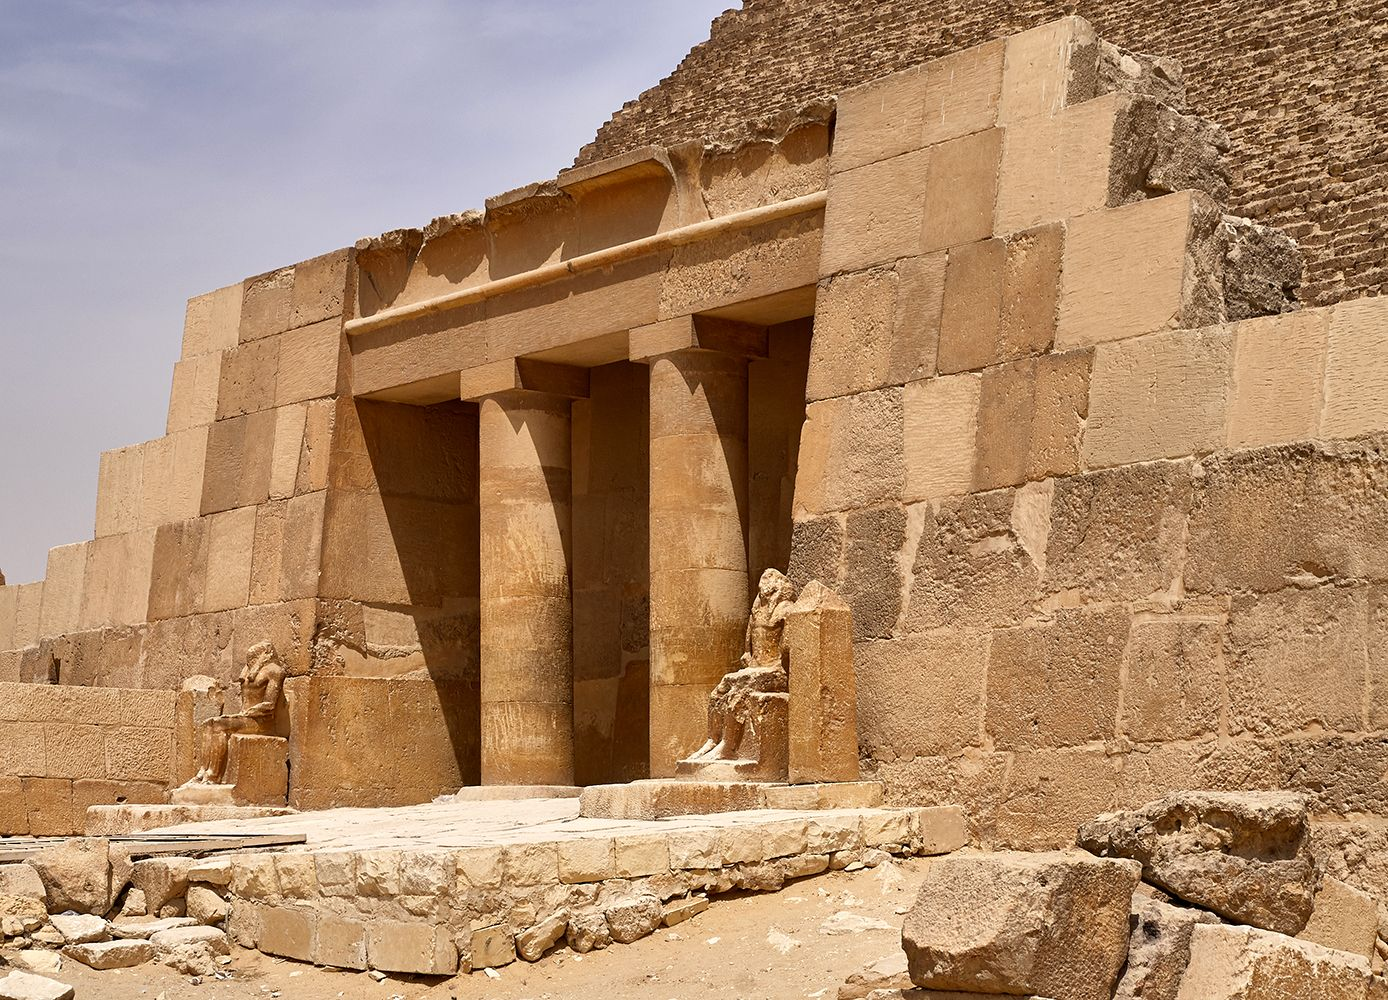 Virtual Tours Can Whisk You To Ancient Egypt Pyramids Of Giza Great Pyramid Of Giza Egyptian Pyramids